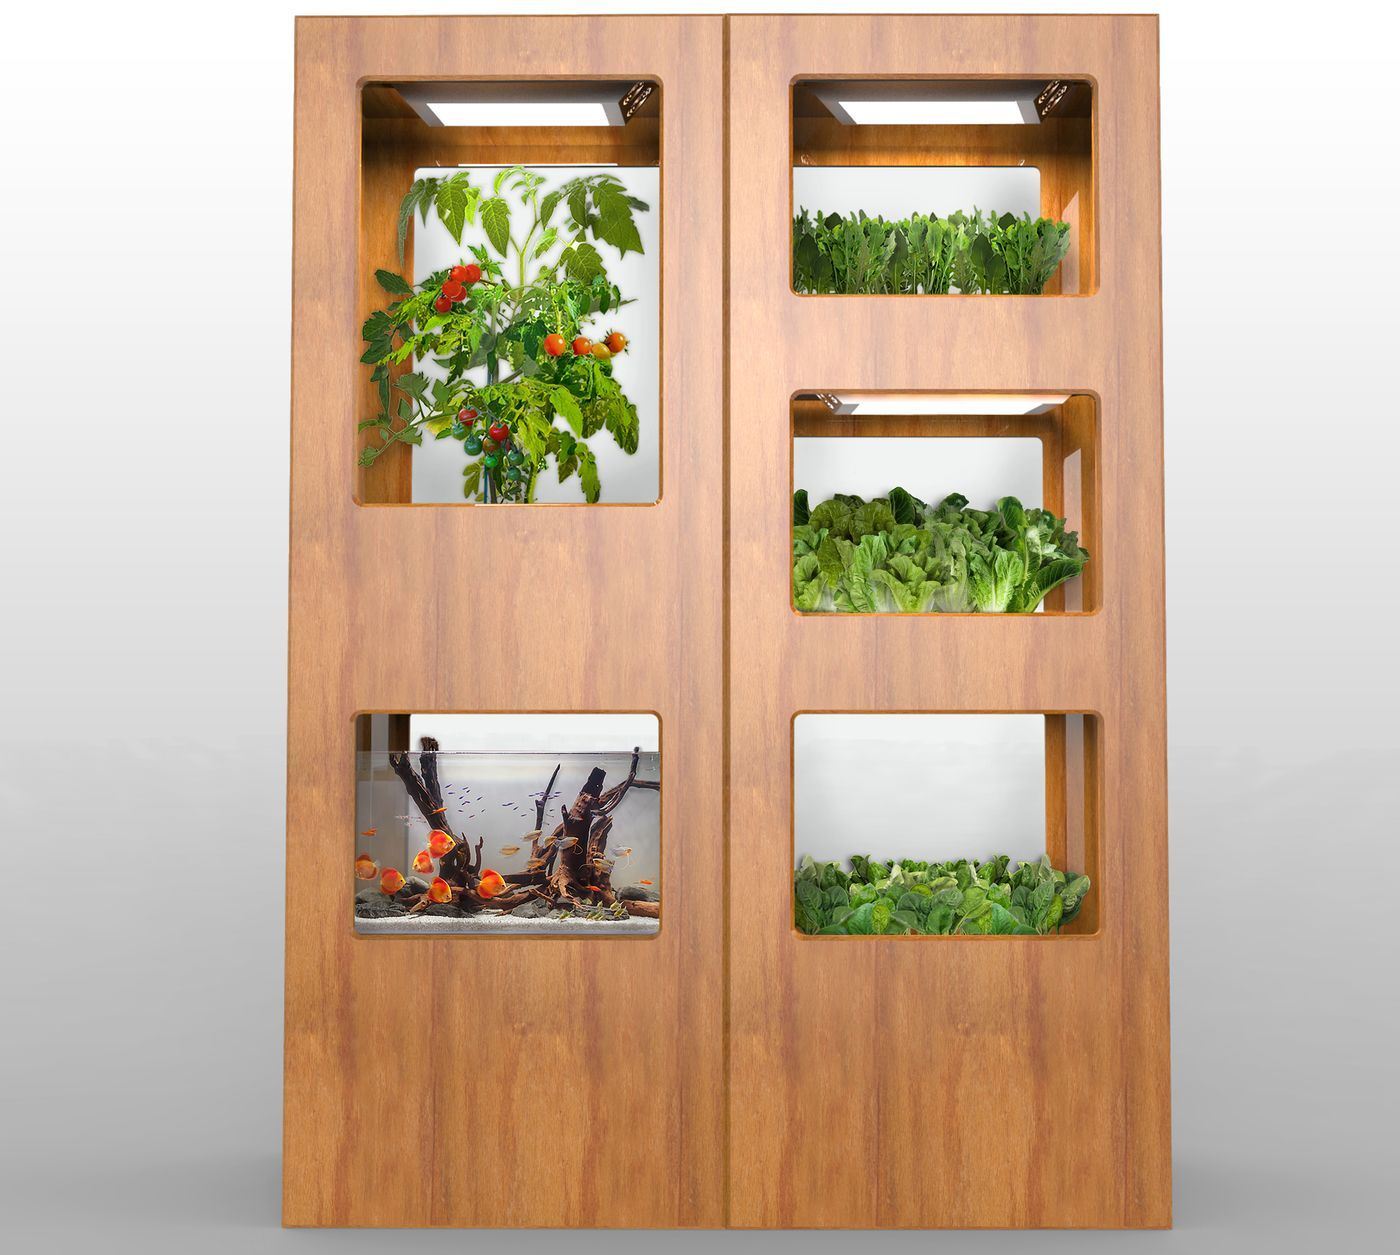 Grove labs wants to put a tiny farm in your kitchen the for Hydroponic garden with fish